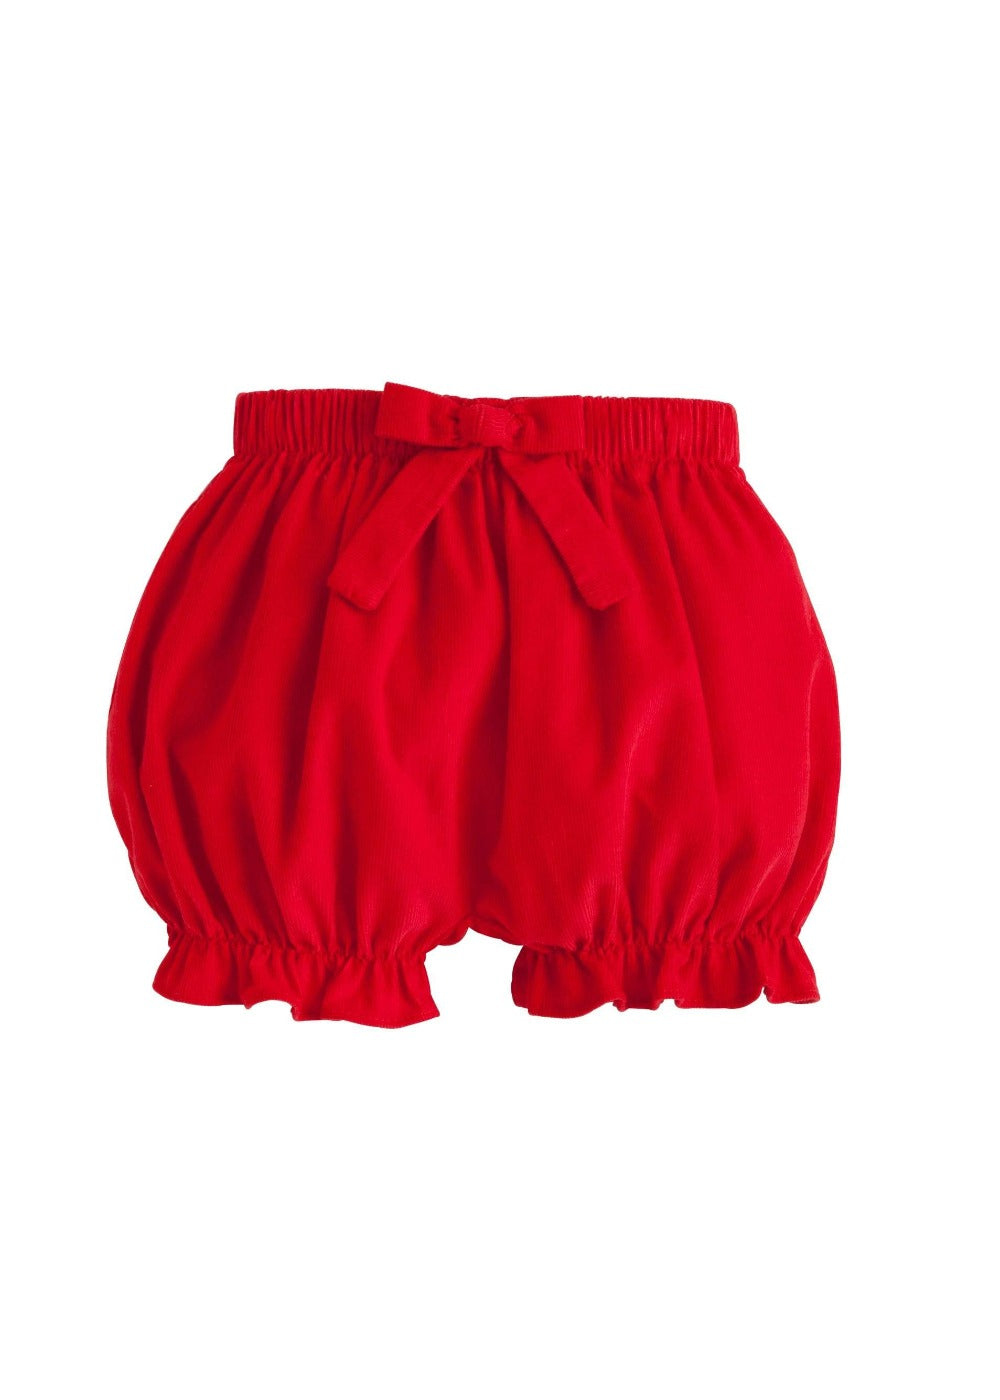 Red bloomers